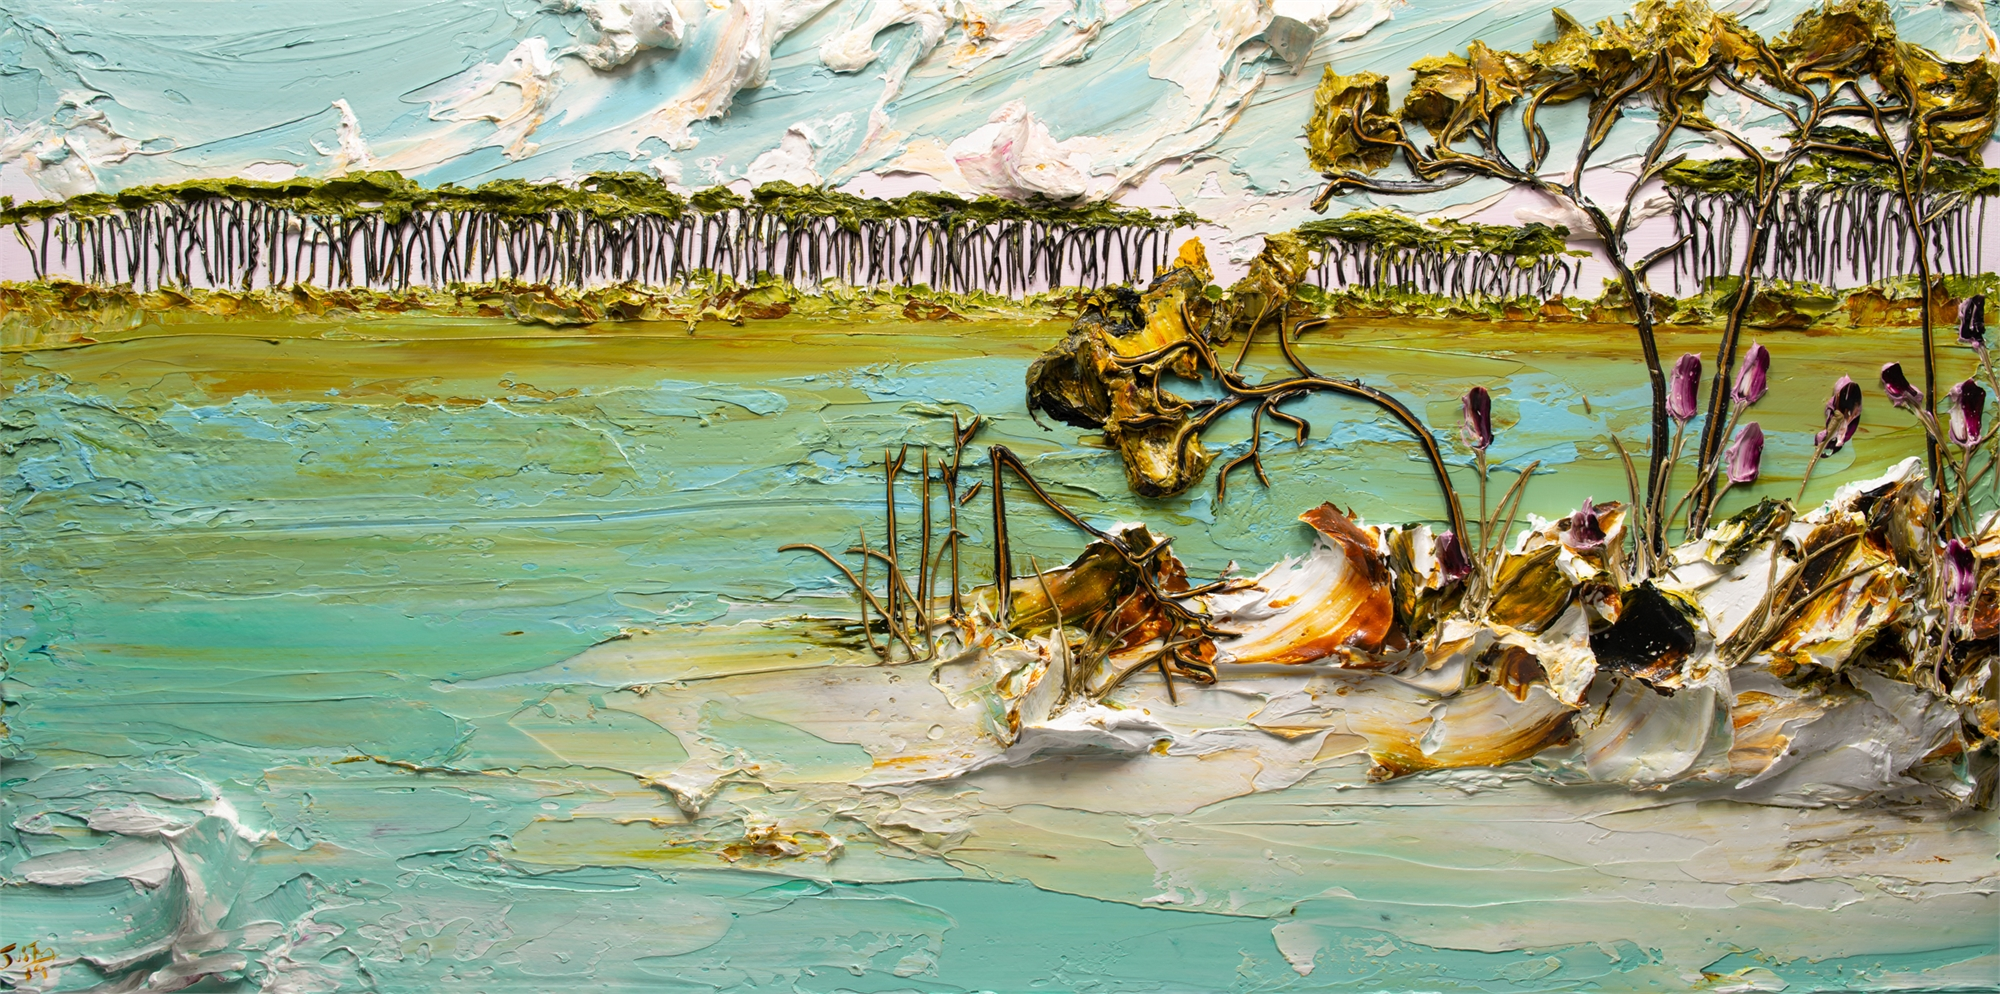 LAKESCAPE-LS-60X30-2019-166 by JUSTIN GAFFREY